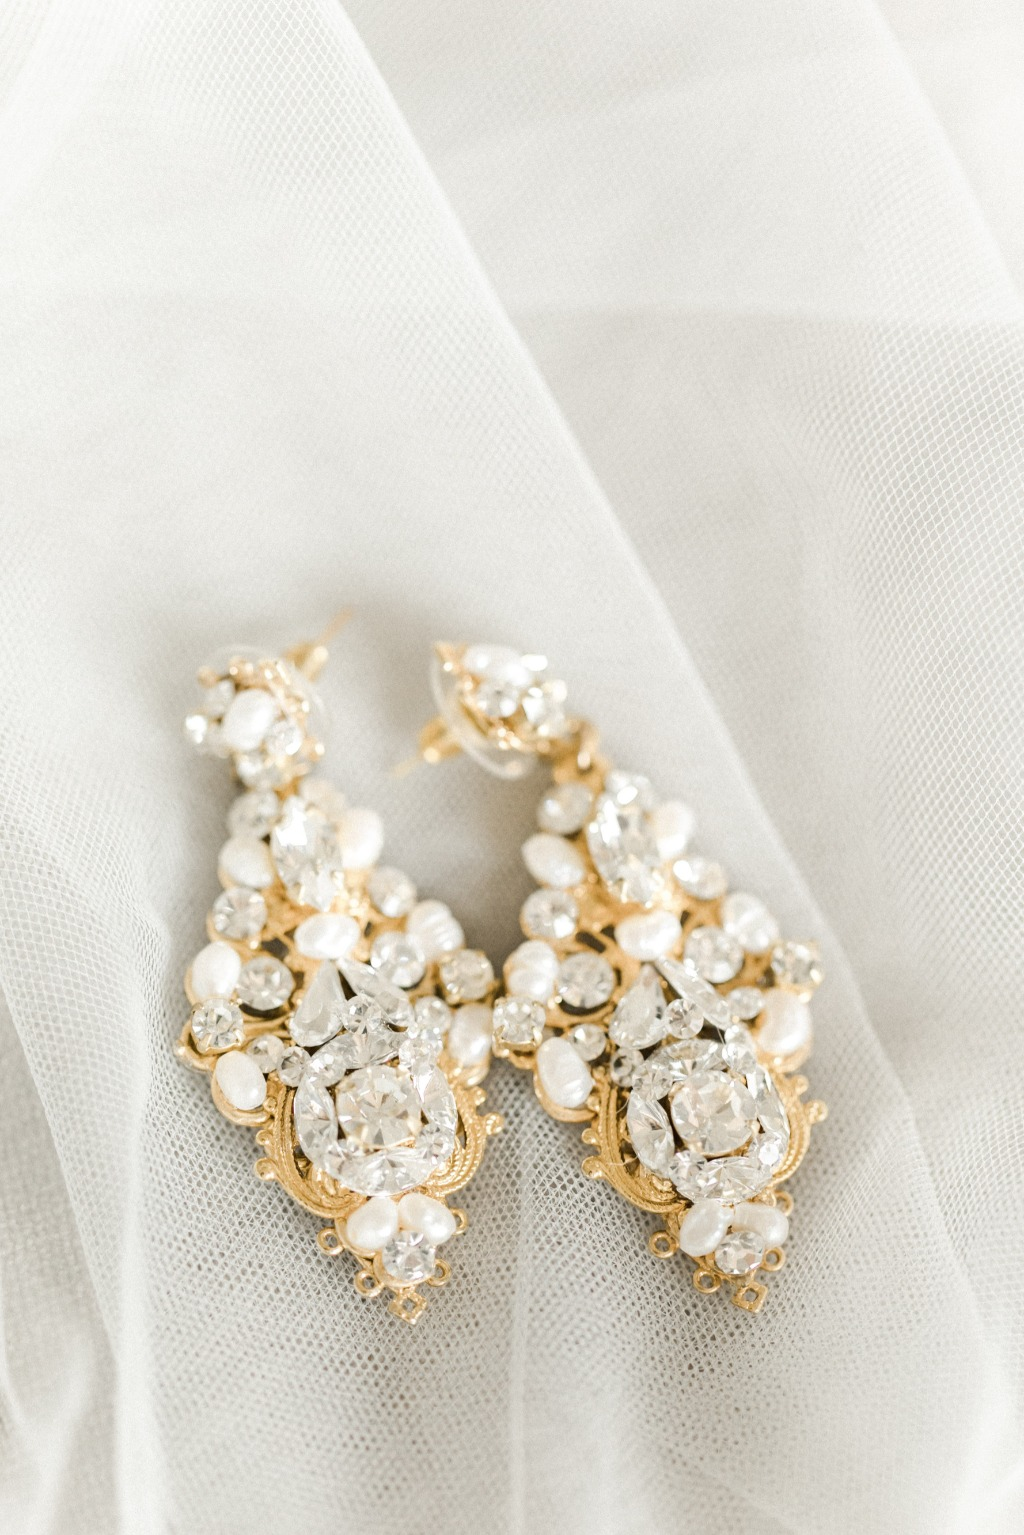 Thomas Knoell Designs Accessories Trunk Show